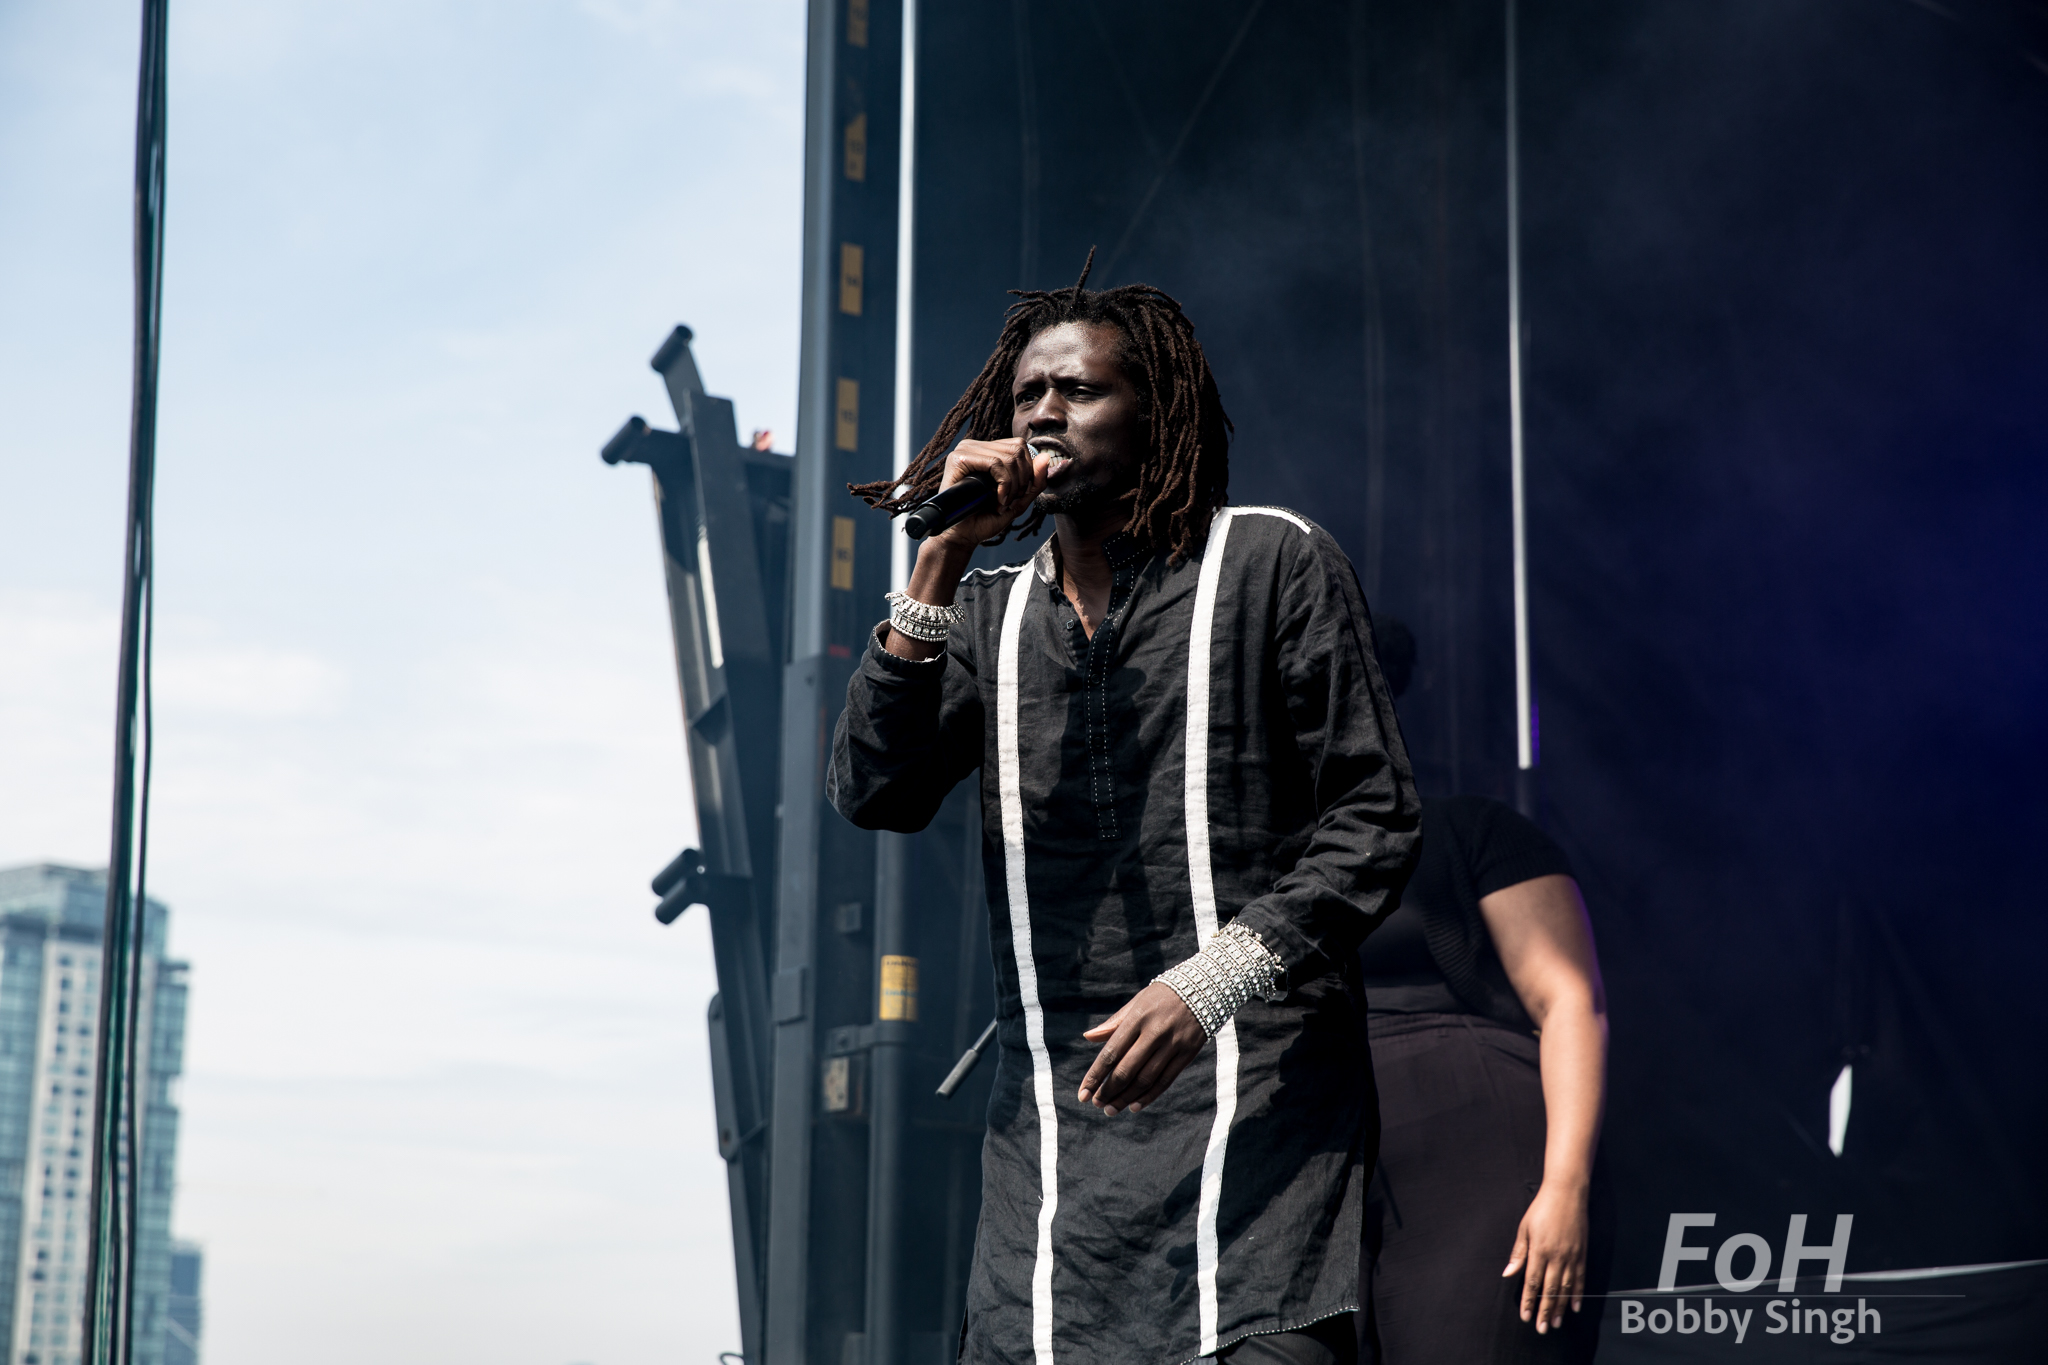 Sudanese-Canadian singer Emmanuel Jal performs at the CBC Music Fest in Toronto, CANADA